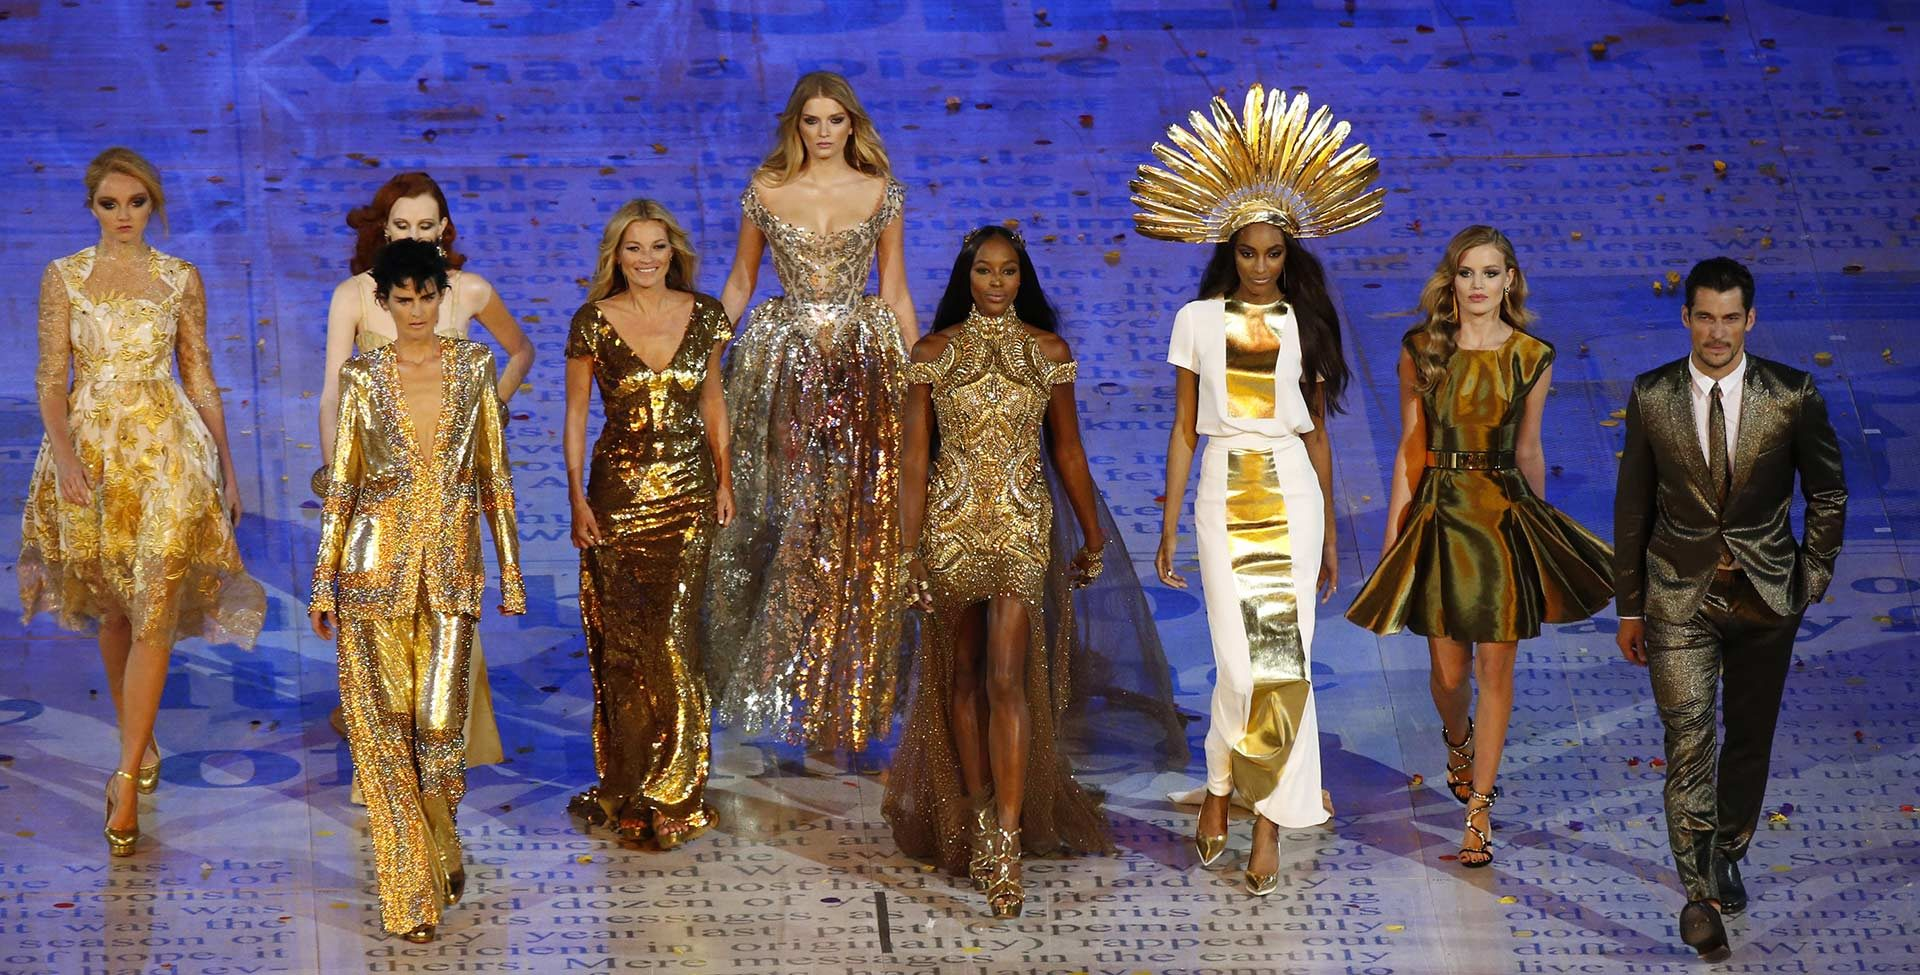 British supermodels including Kate Moss, Lily Donaldson, and Naomi Campbell at the 2012 London Olympics